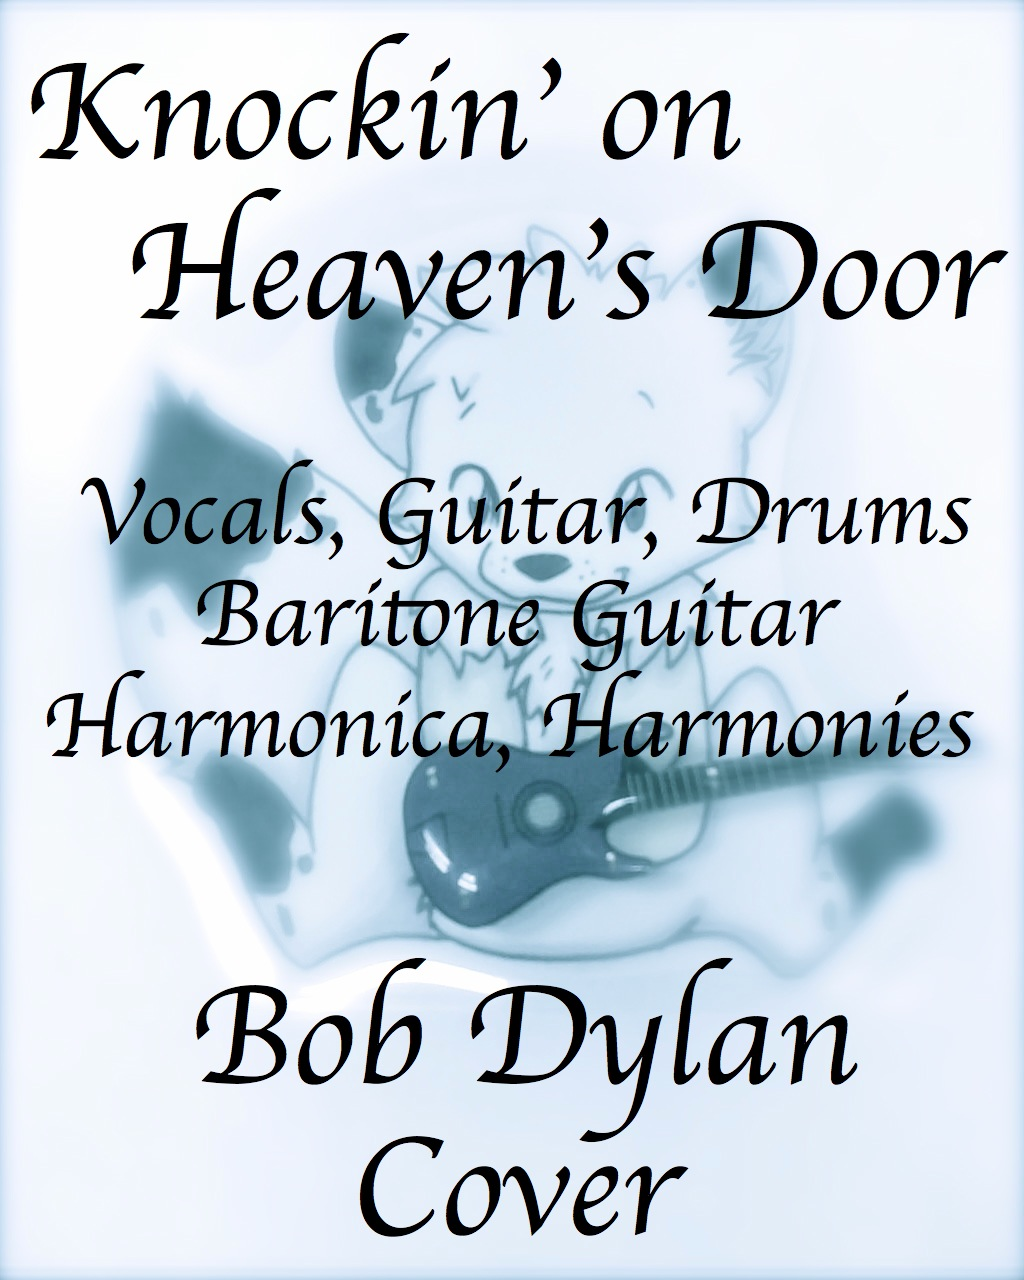 Knockin on Heaven's Door, Bob Dylan Cover